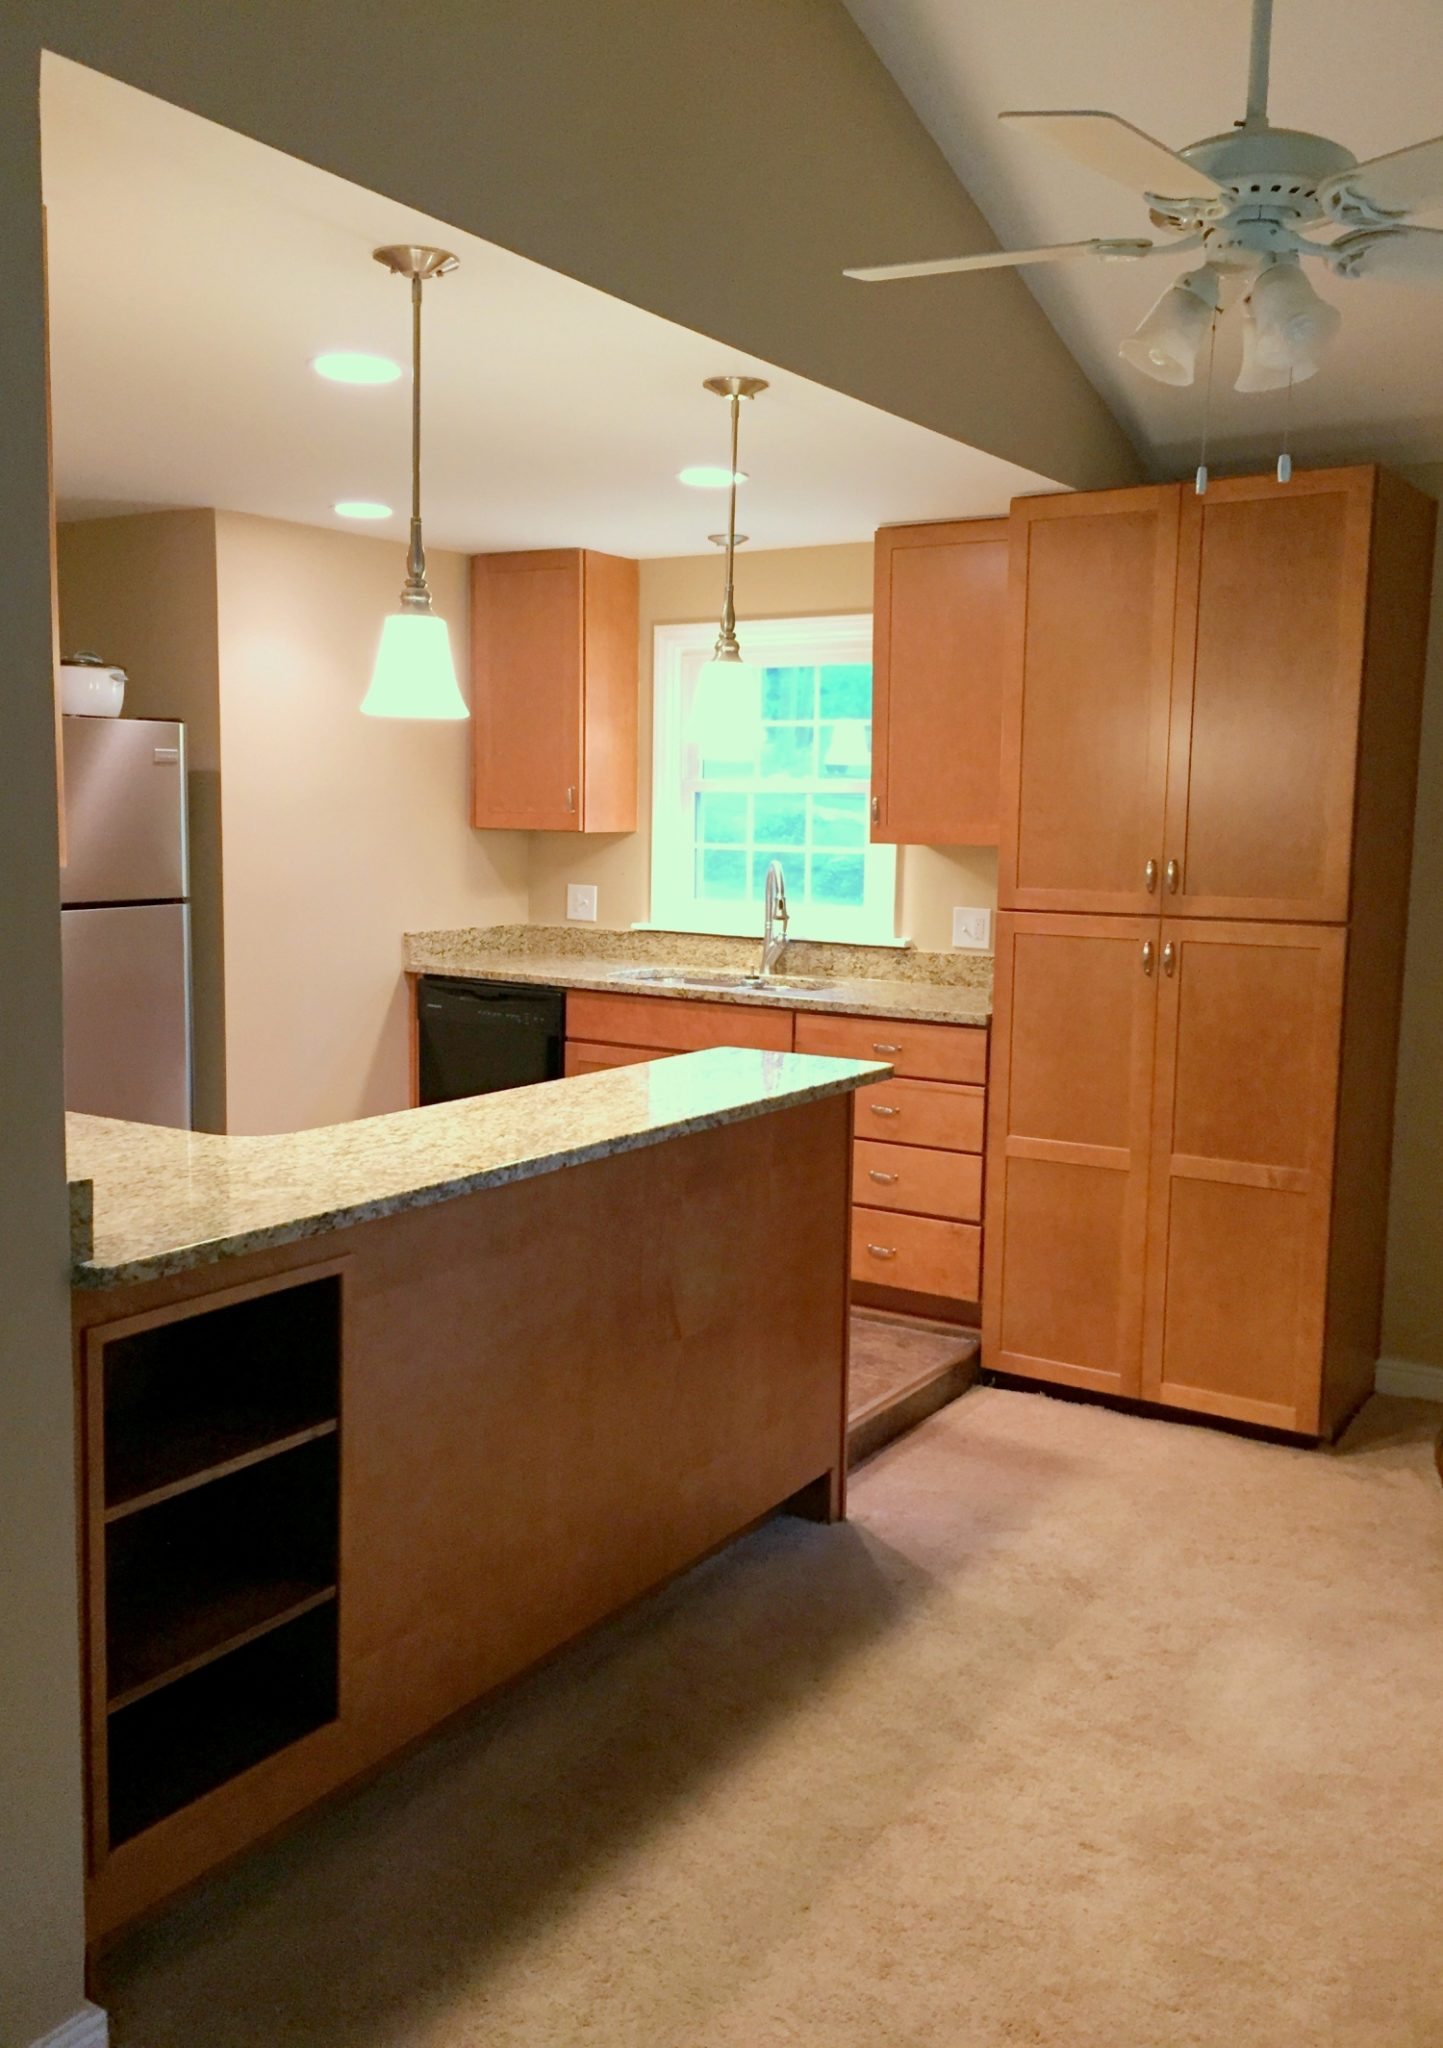 Kitchen Remodel New Cabinets Doug Lewis Remodeling